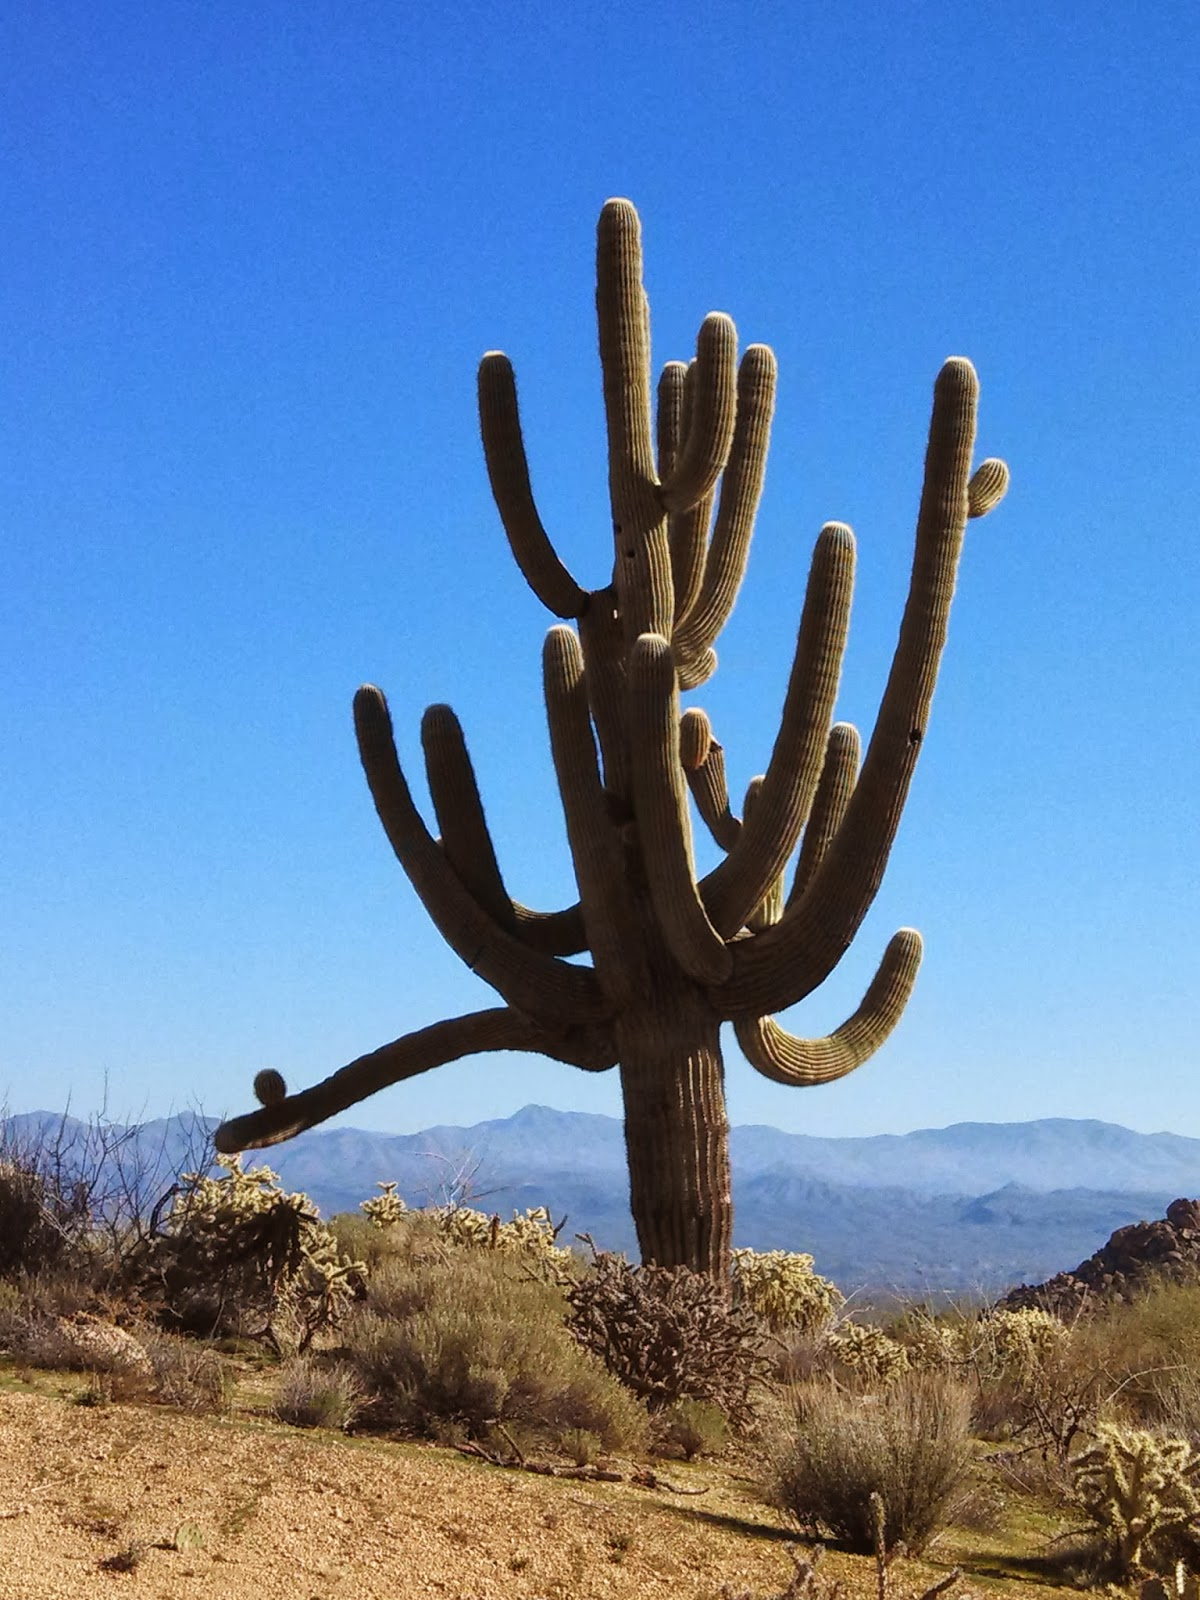 The mighty saguaro cactus is a native of the Sonoran Desert, located in southern Arizona and California as well as much of Mexico. (Photo by Kristy McCaffrey, author of Into the Land of Shadows.)